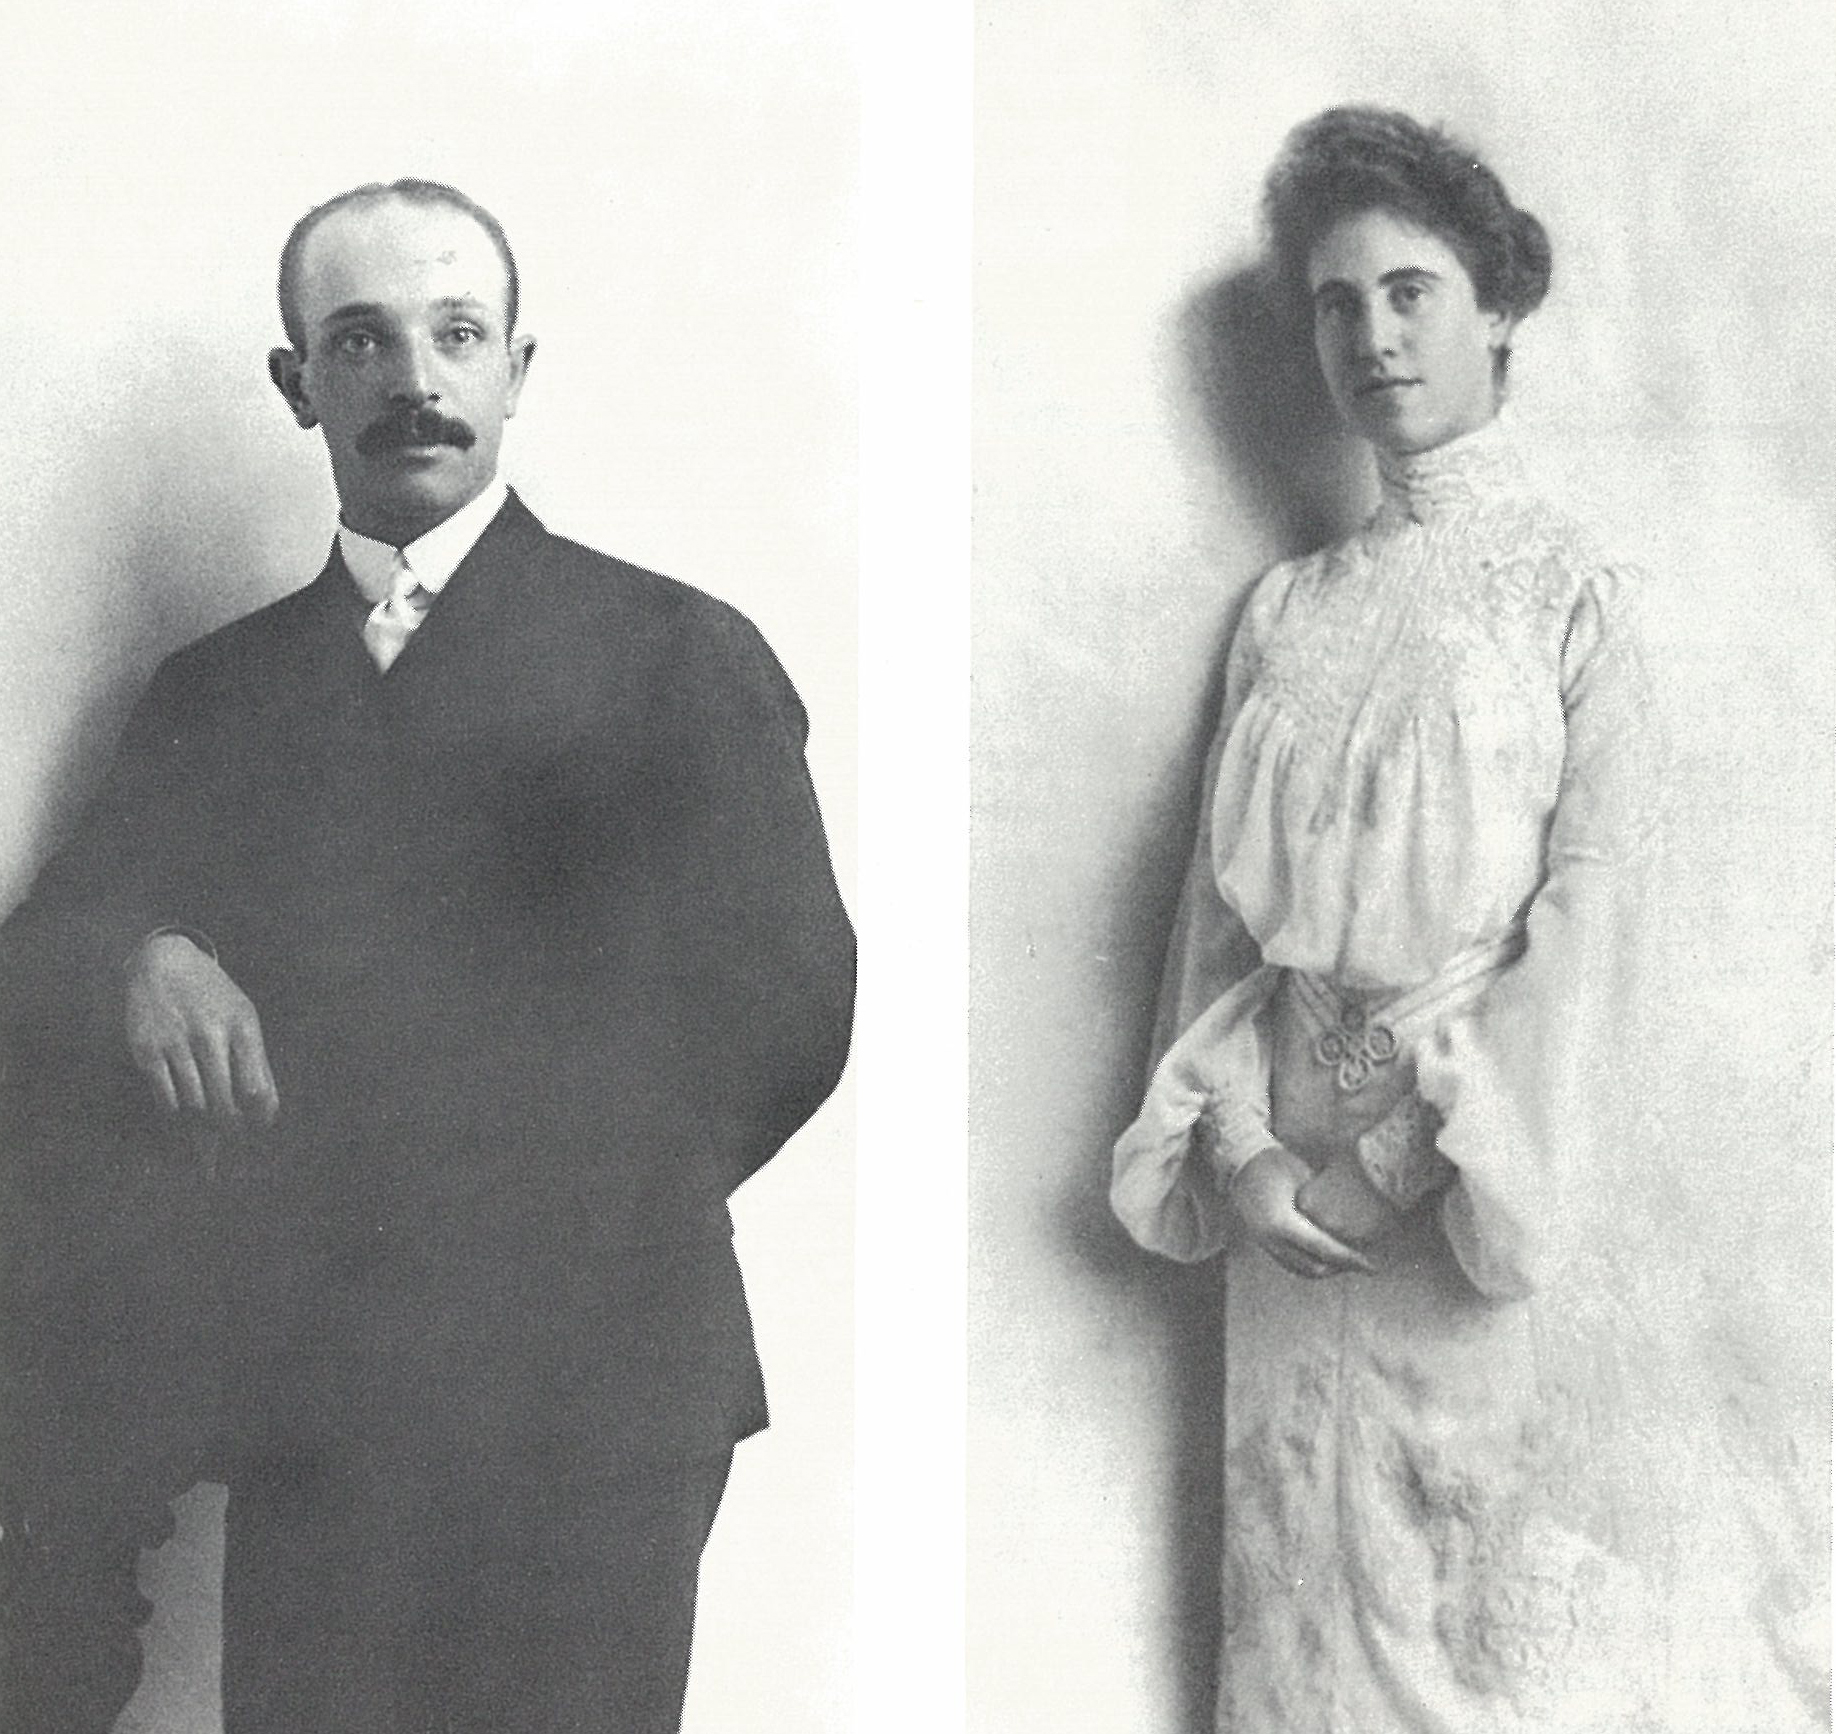 Edward Bransten and Florine Haas